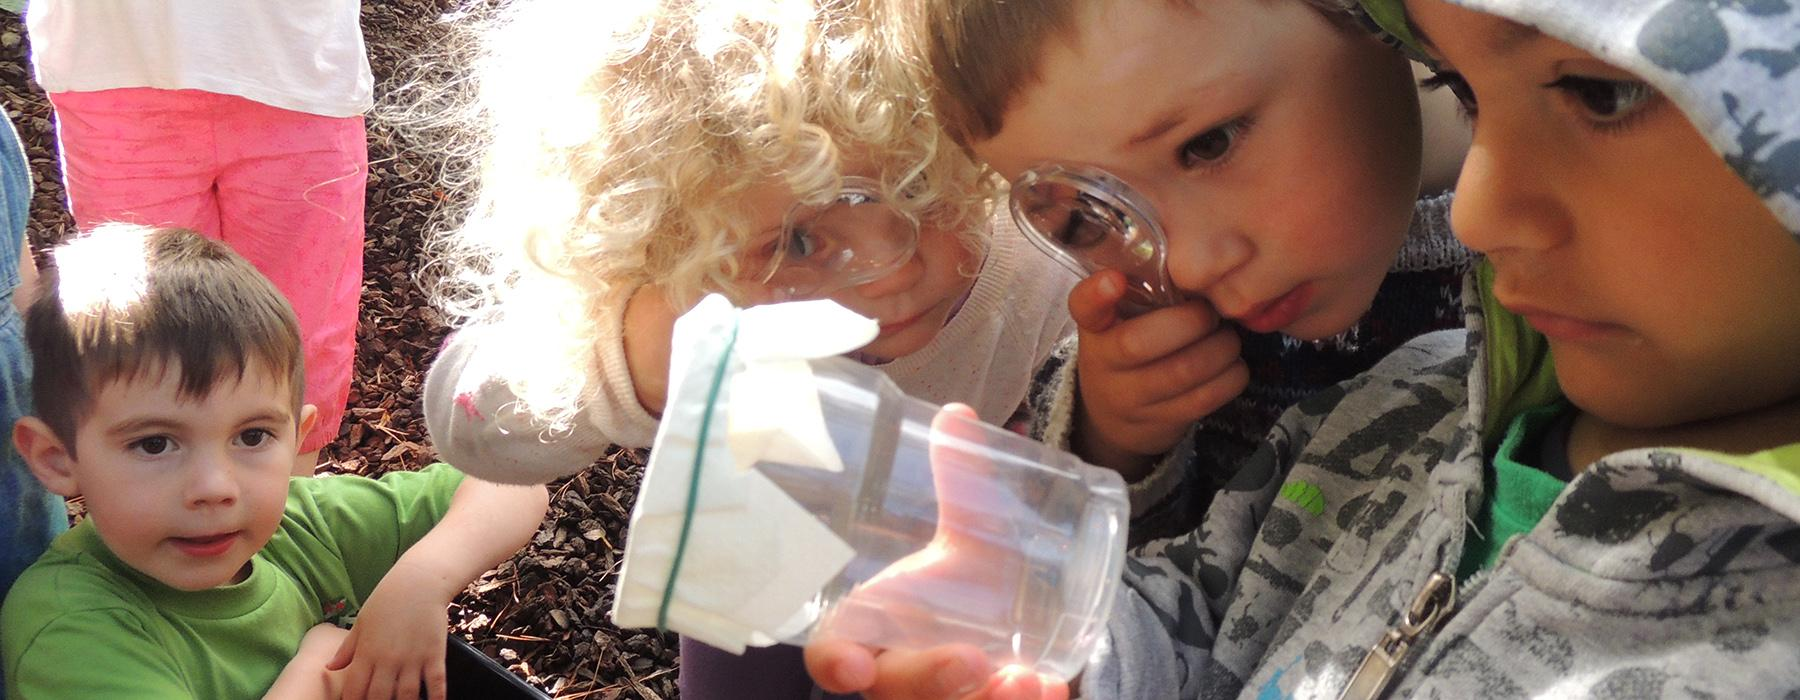 Young children using a magnifying glass to look at bugs